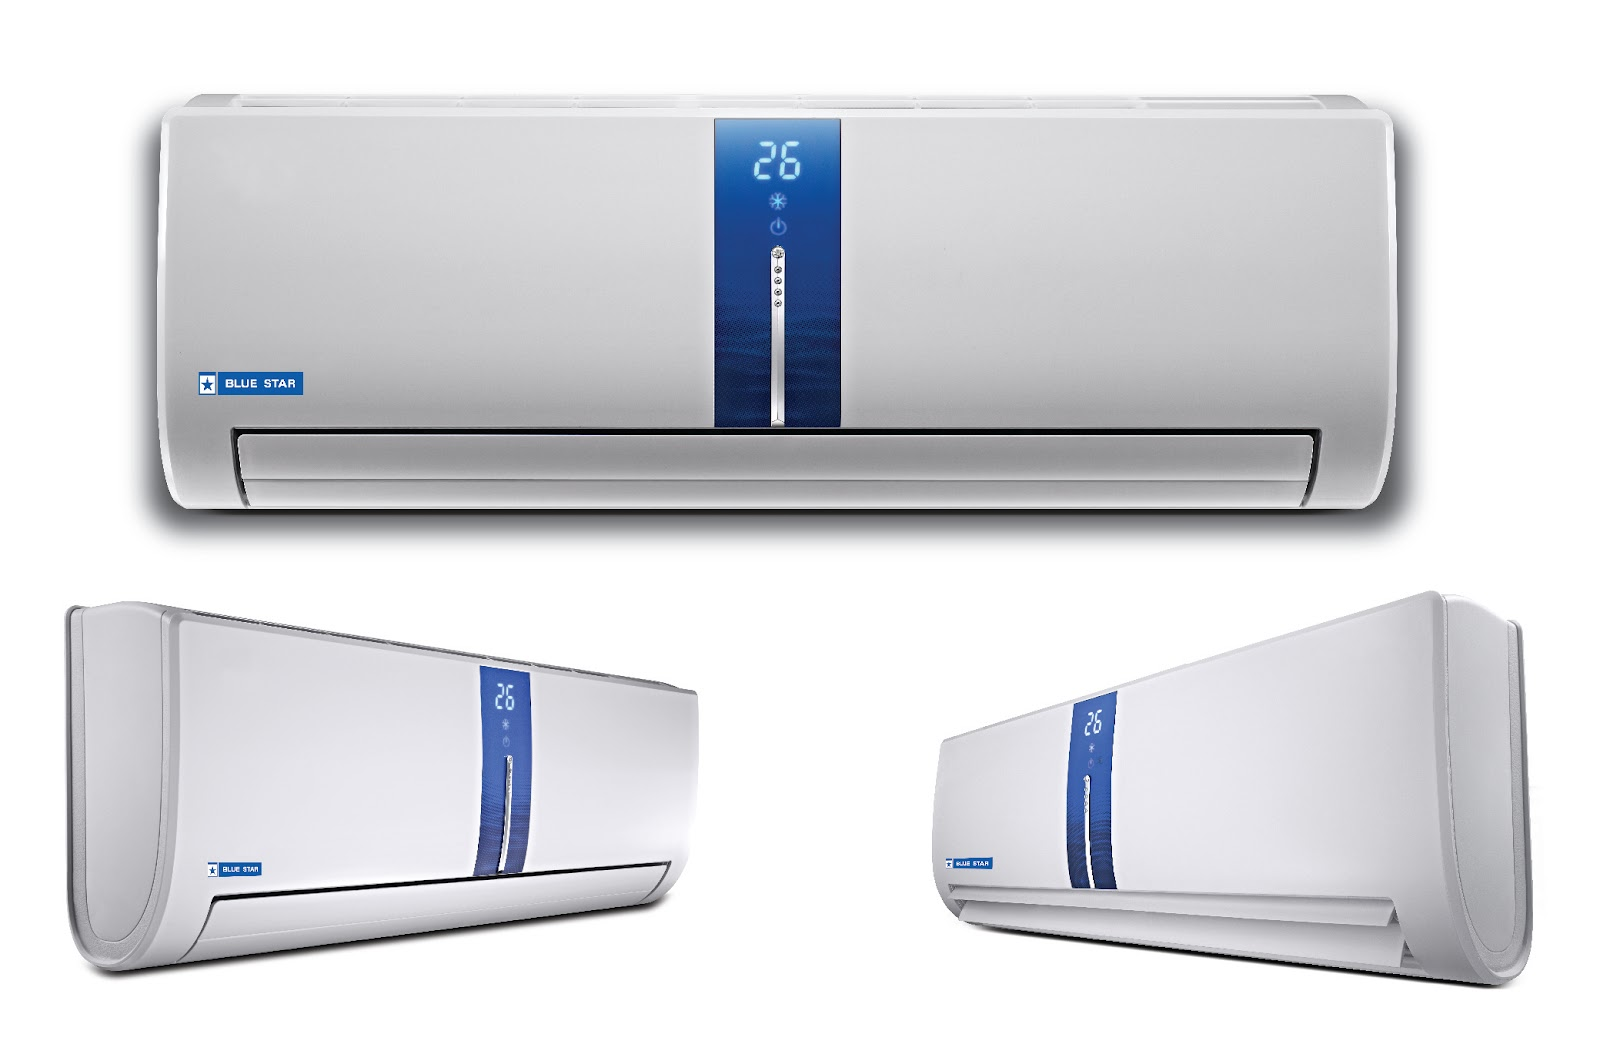 Ultra cool Fun: Top 10 Airconditioners (AC's) in India #20407D